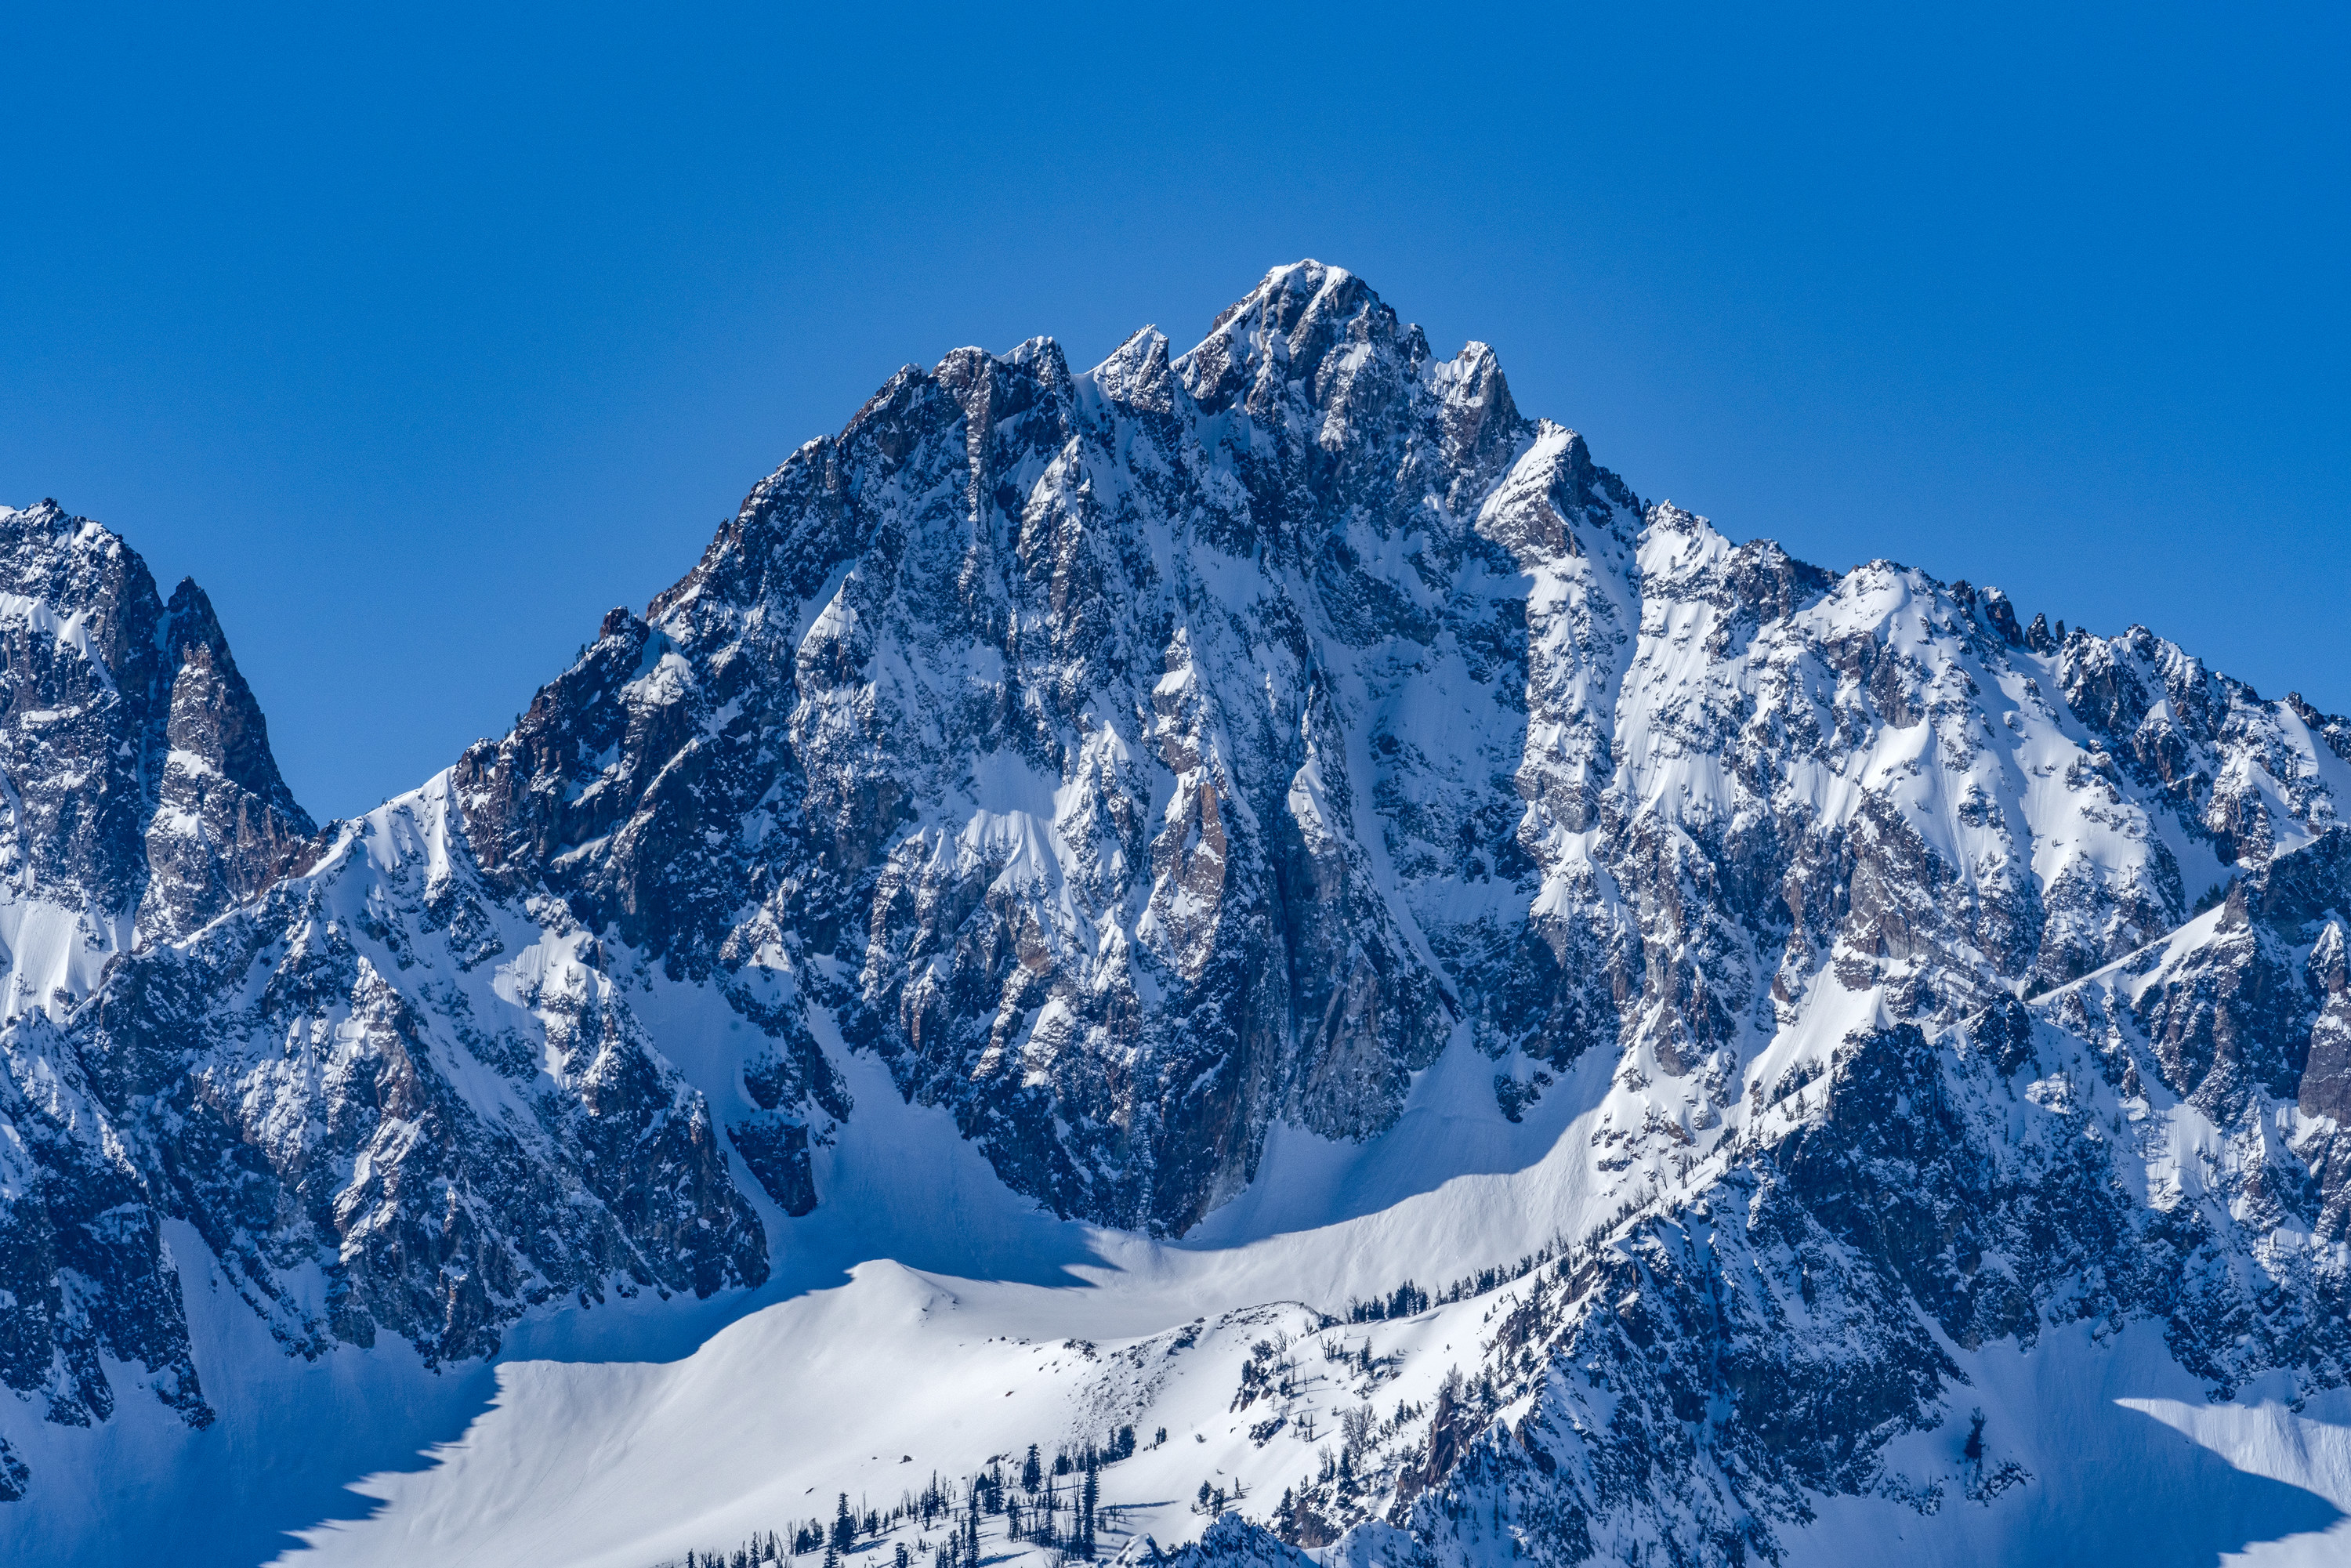 The snowy Rocky Mountains are seen against the backdrop of a clear blue sky